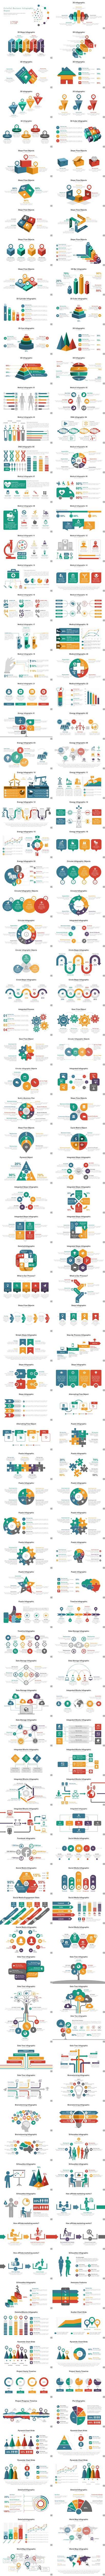 Chart Series One - PowerPoint Templates Presentation Templates